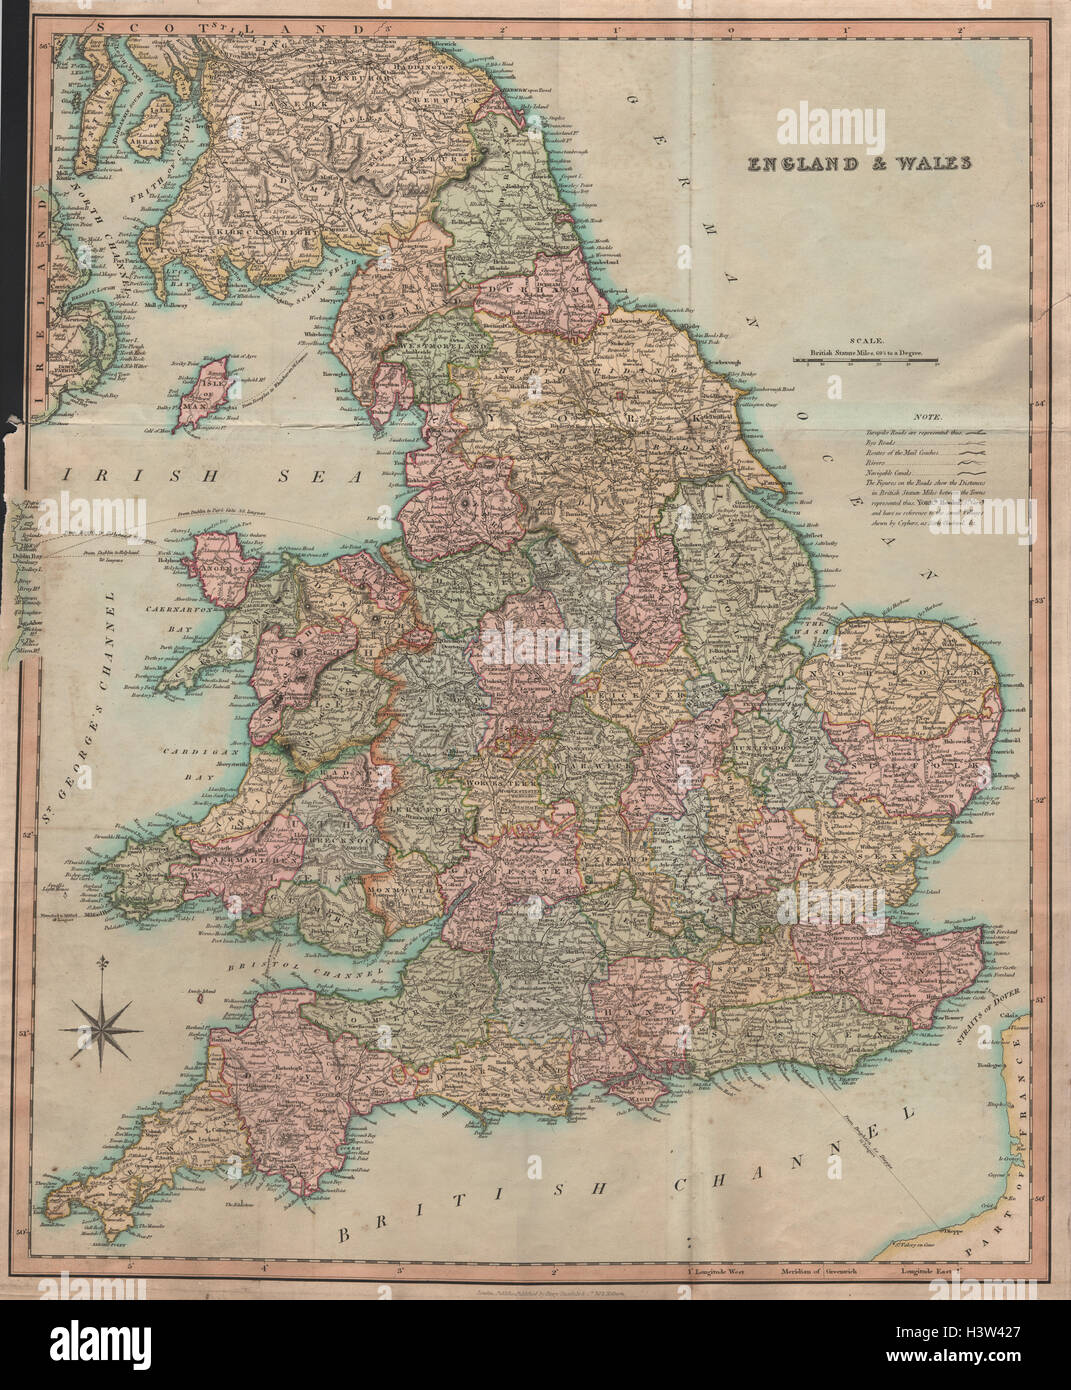 Old map new england stock photos old map new england stock images antique map of england wales by henry teesdale 1831 old chart stock image gumiabroncs Choice Image